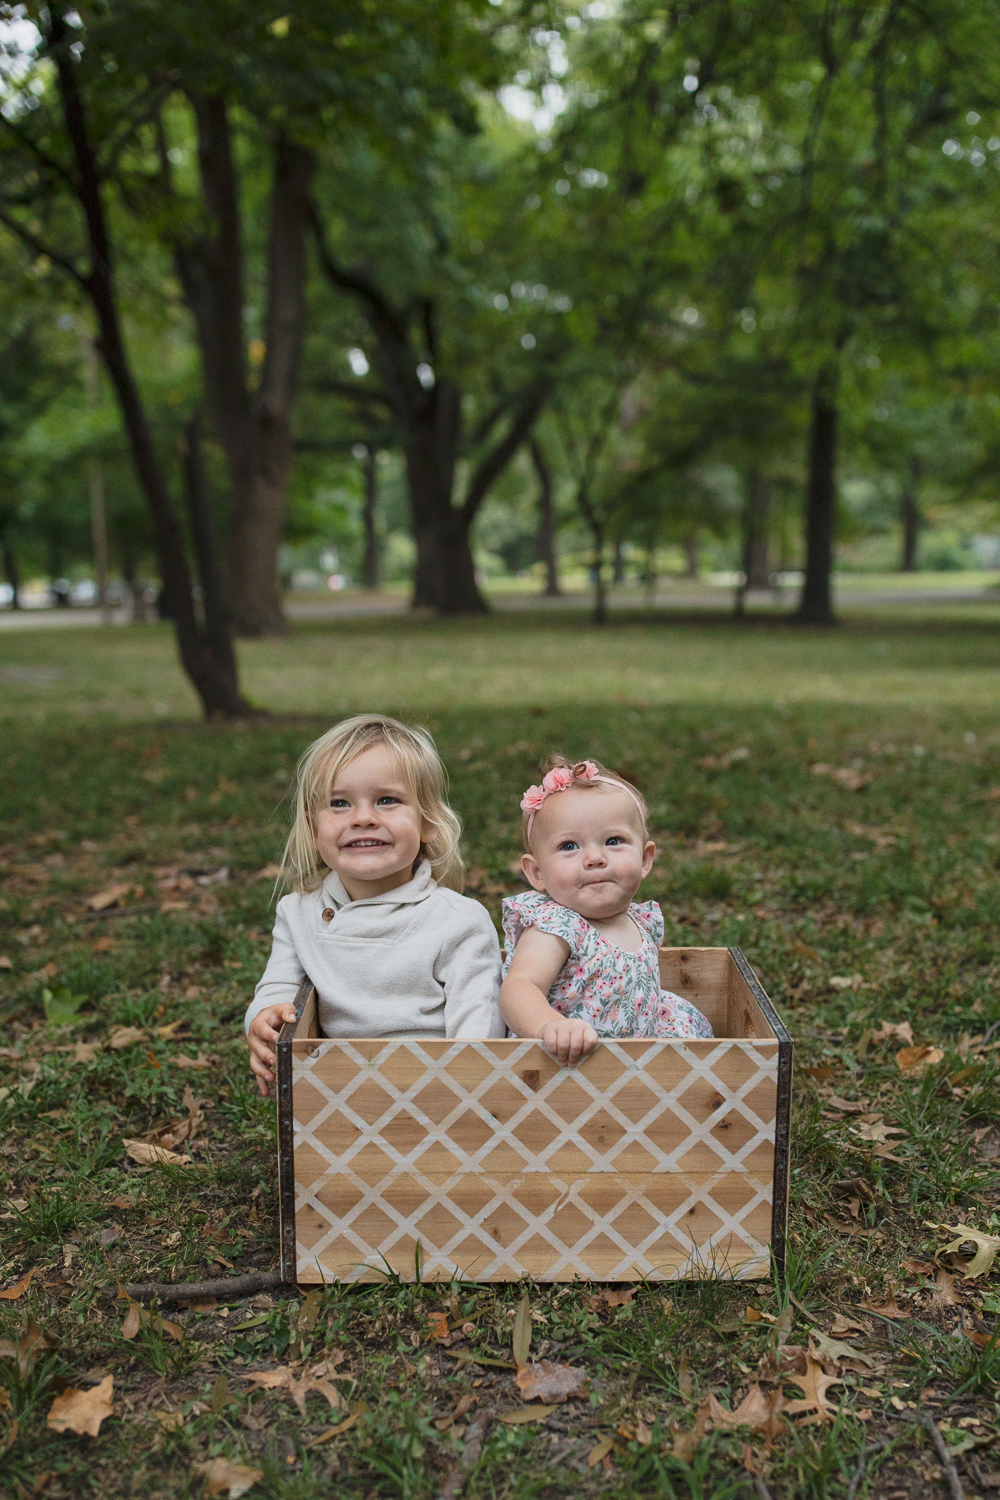 18-1004-Lacey Family_SE-48.jpg